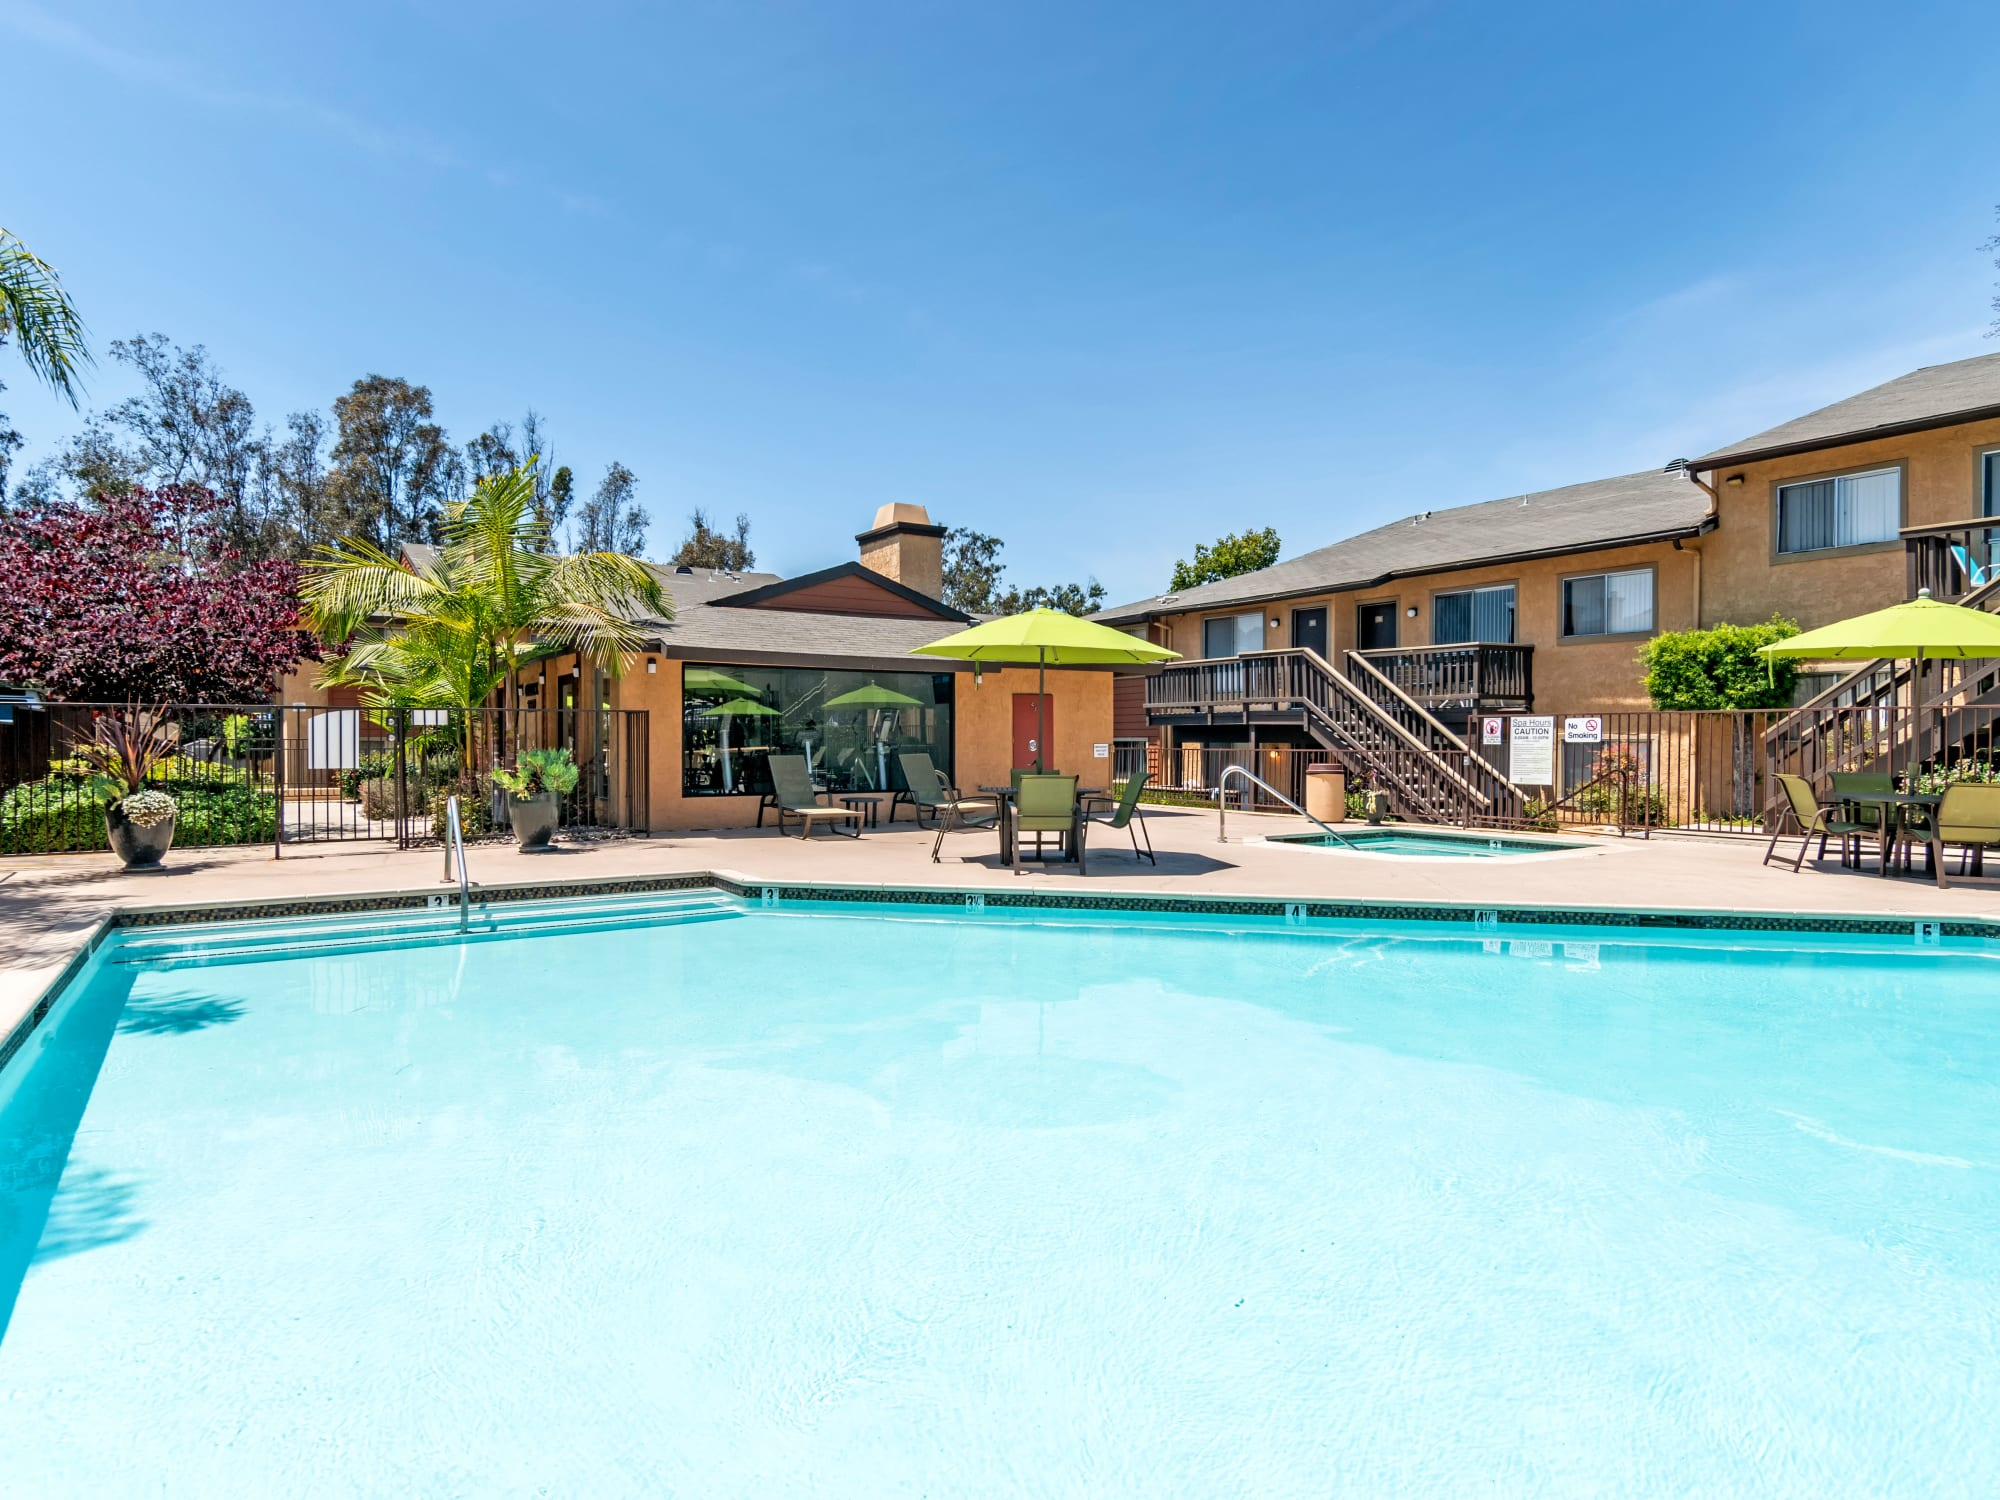 Sparkling Pool View in Lemon Grove, CA